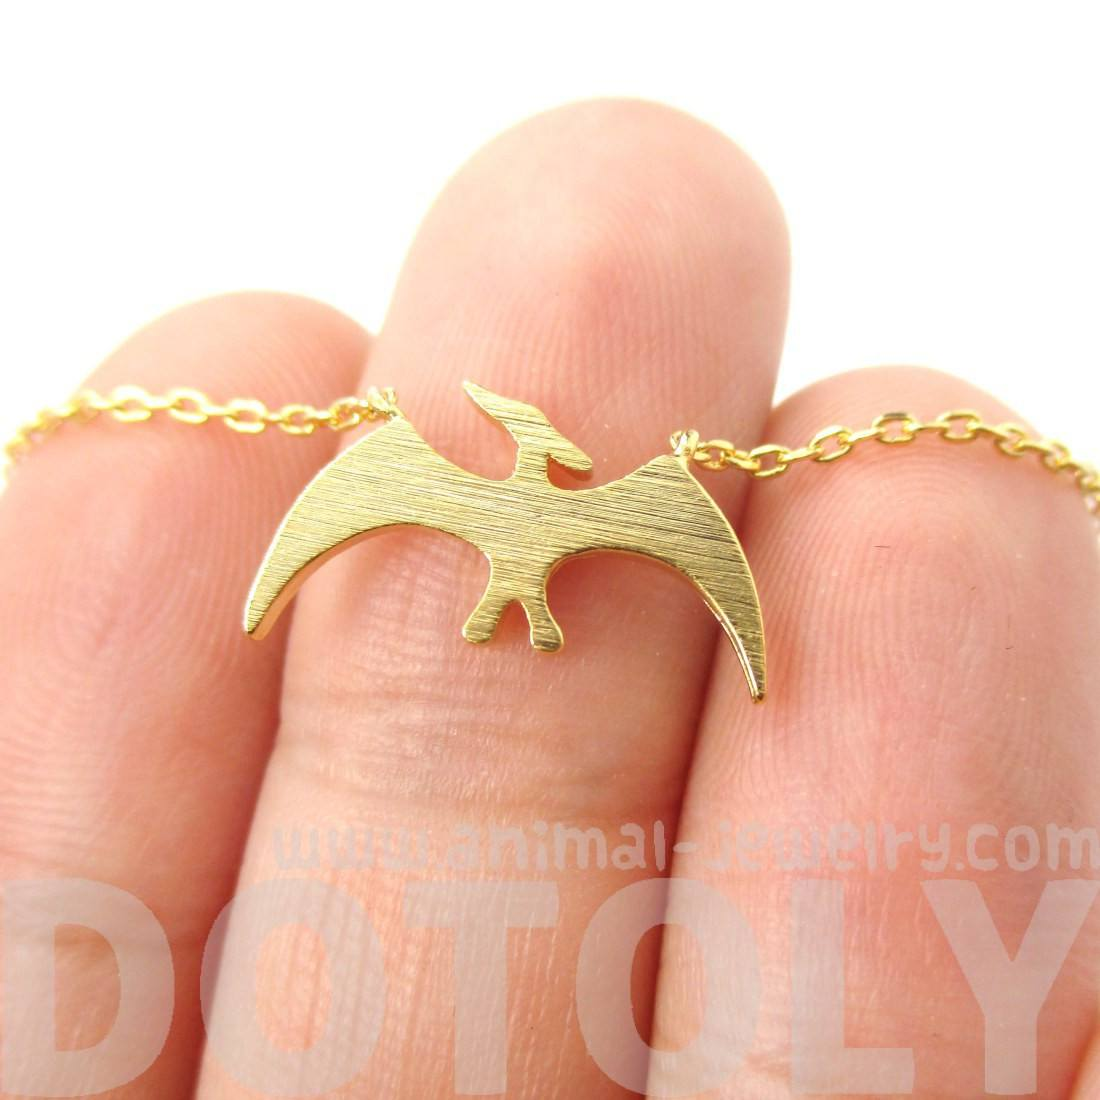 Pterodactyl Dinosaur Silhouette Animal Themed Charm Necklace in Gold